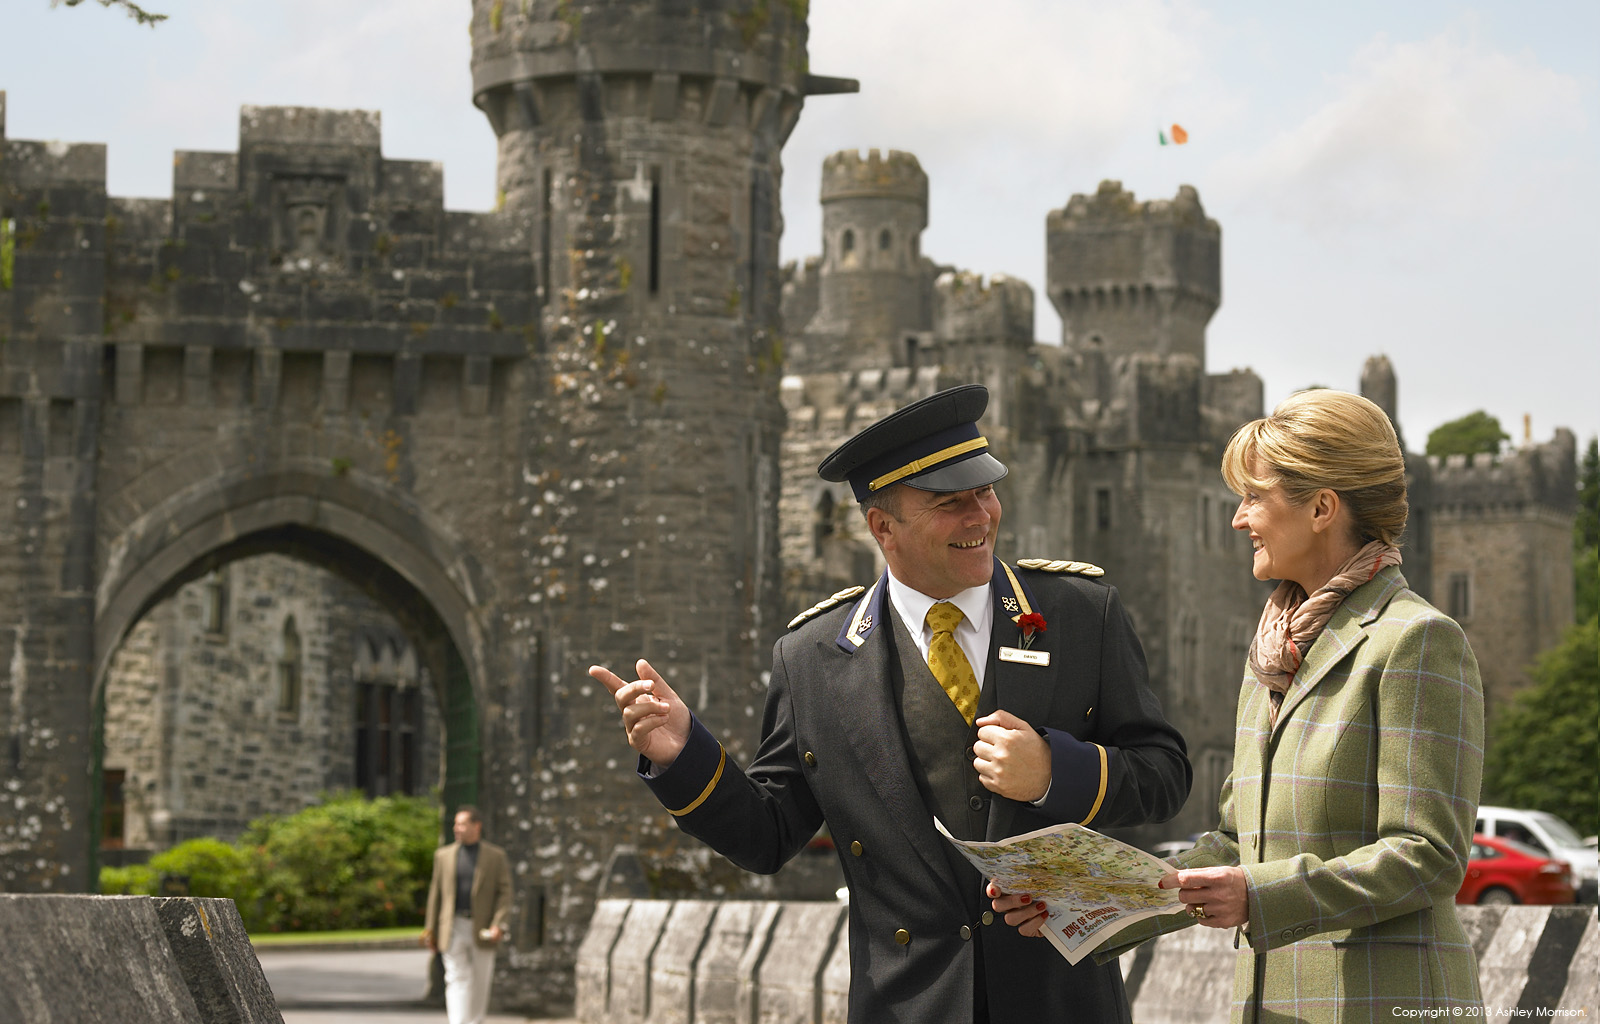 The Doorman at Ashford Castle in County Mayo talking to a guest on the bridge by Ashley Morrison.